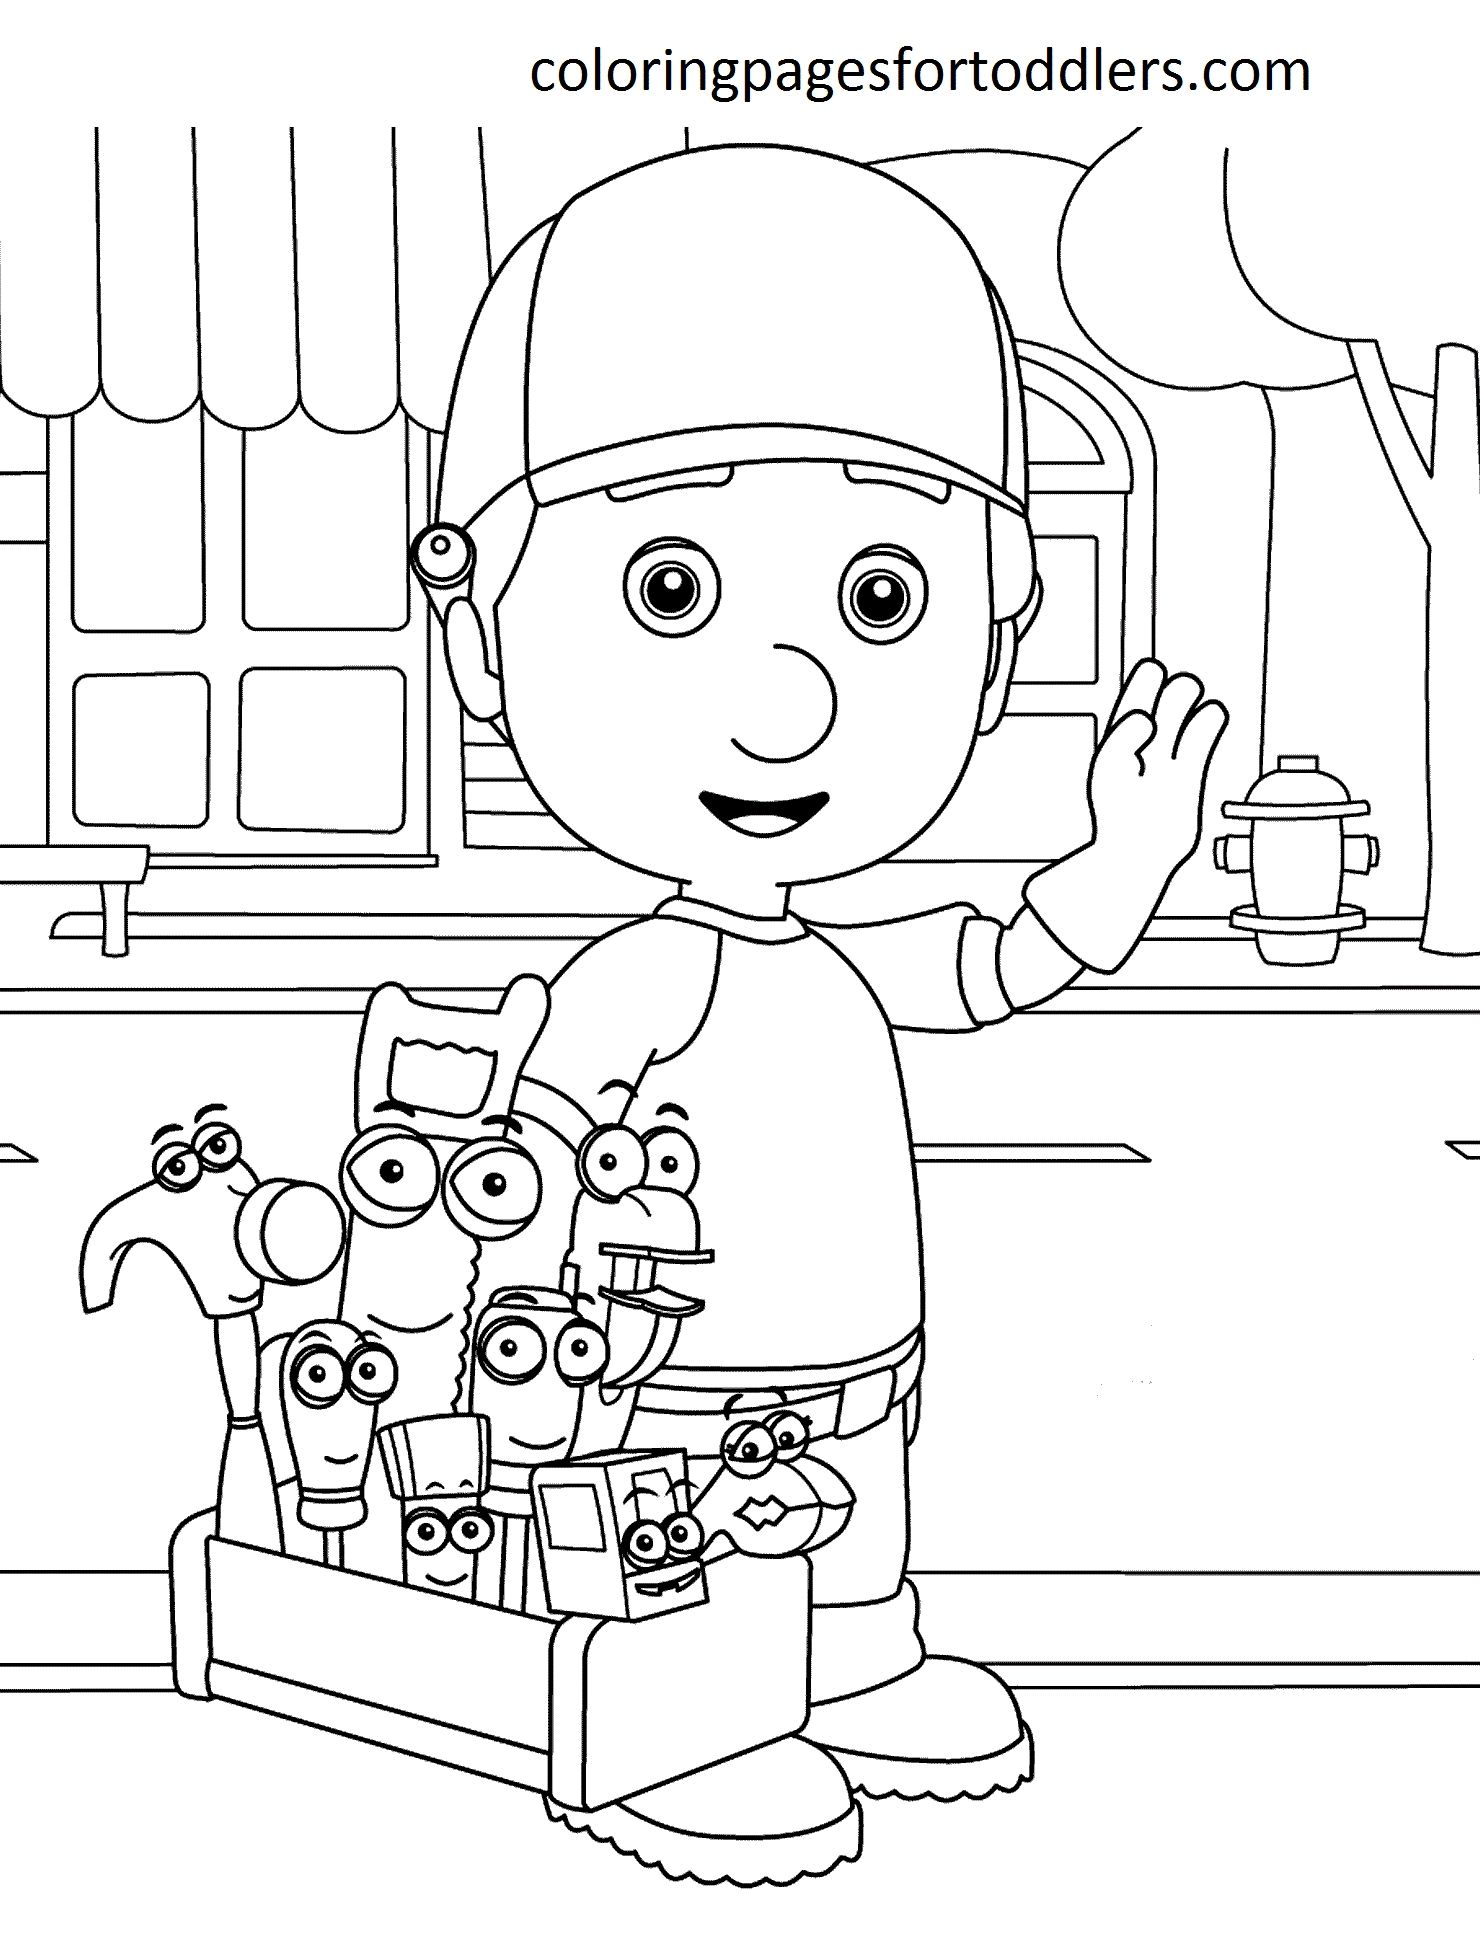 Handy Manny Coloring Pages Collection Disney Coloring Pages Disney Coloring Sheets Handy Manny